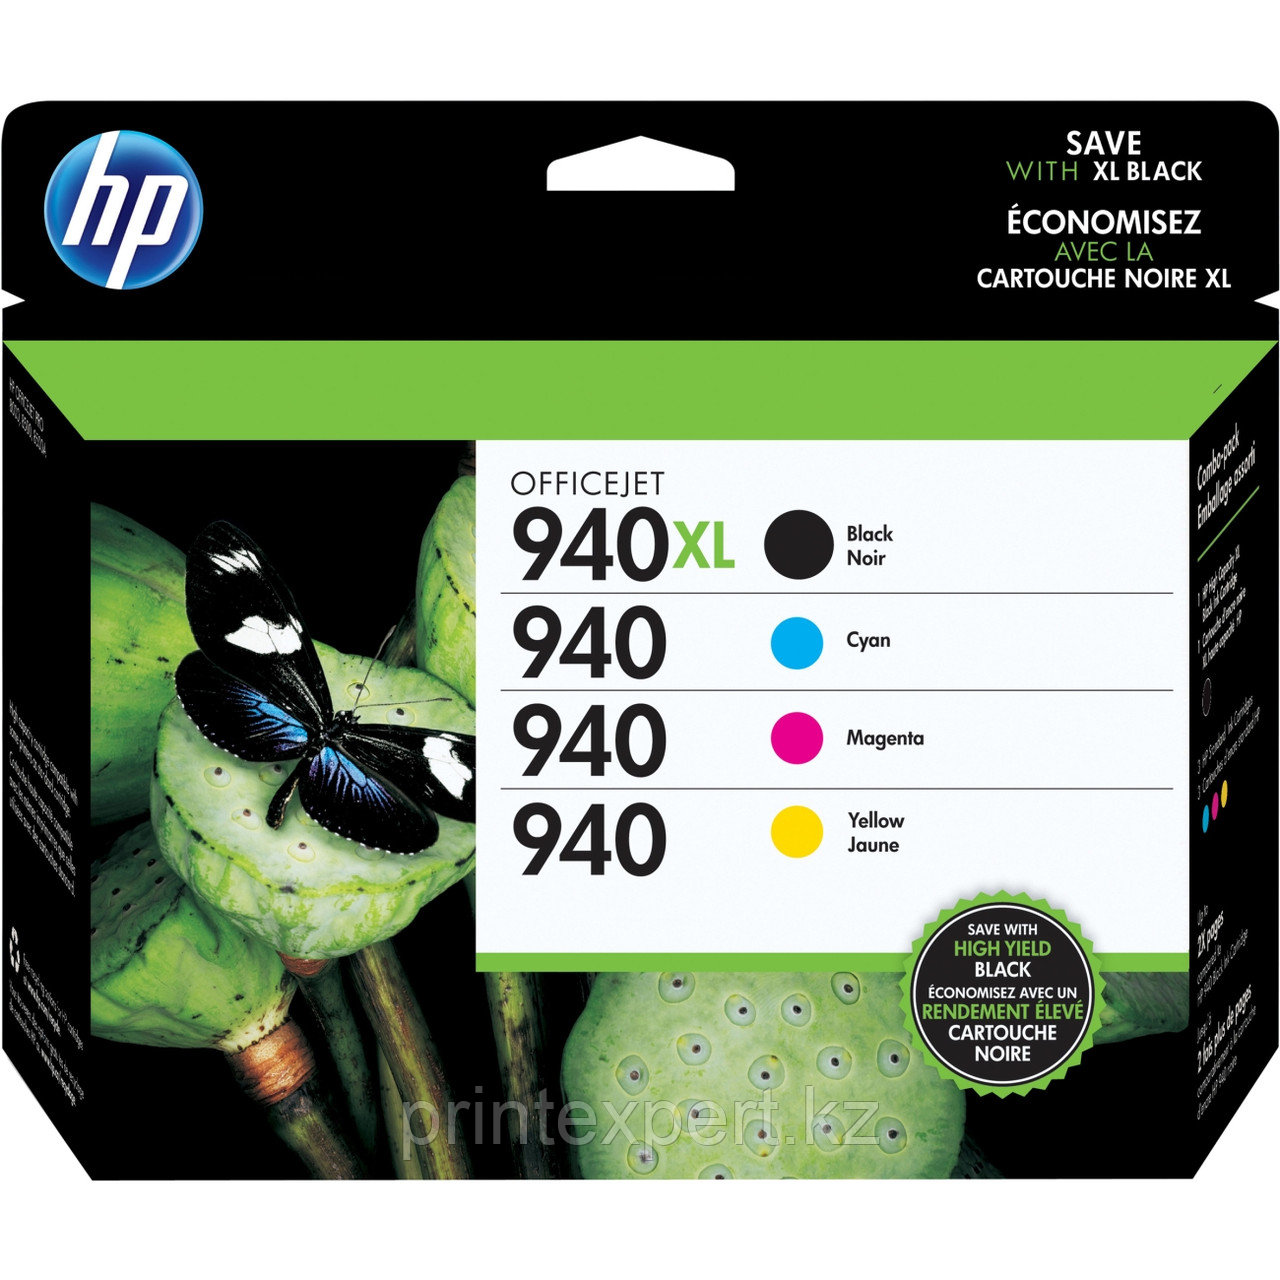 HP C2N93AE Ink Cartridge Combo Pack №940XL for Officejet Pro 8000, up to 1400 (2200) pages.  4-pack High Yield